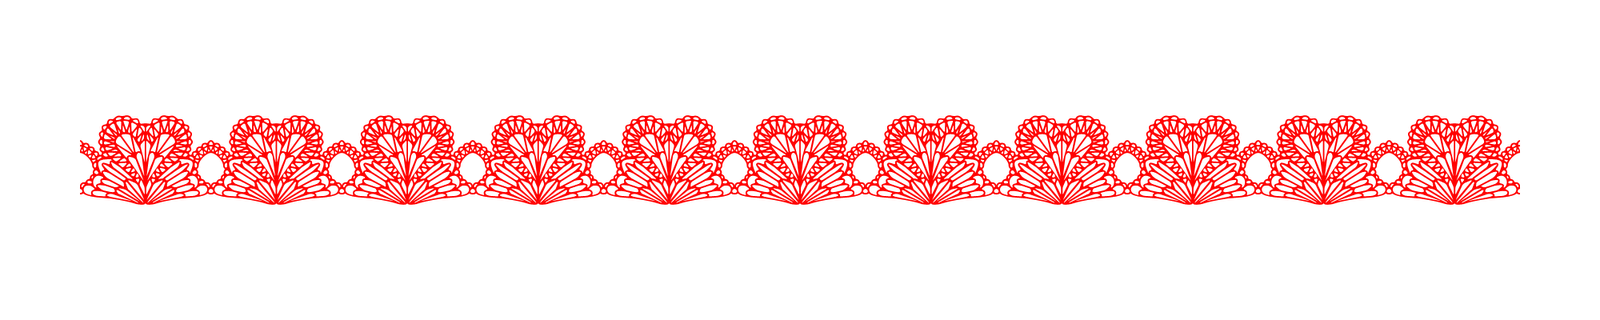 lace Designs.png | My Blog